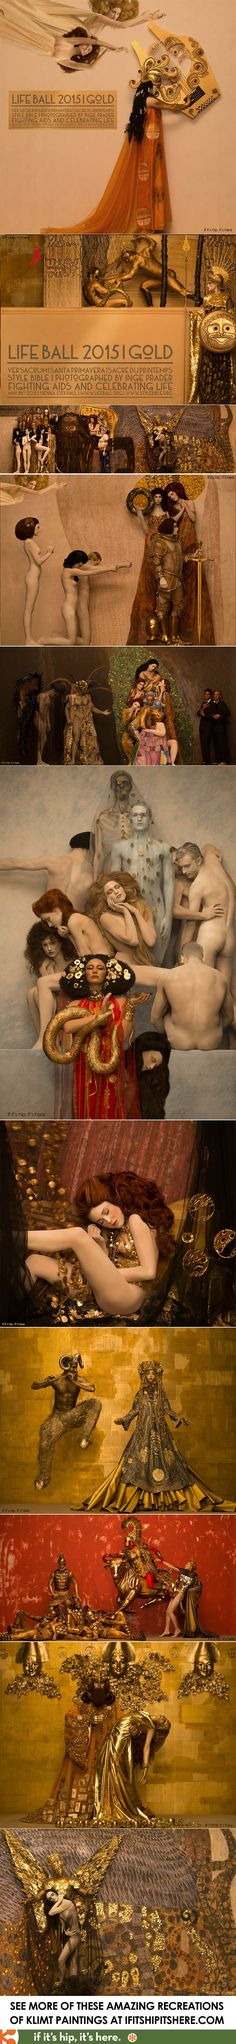 The largest and best photos of the Klimt paintings brought to life for the 2015 Life Ball at http://www.ifitshipitshere.com/life-ball-2015-gustave-klimt-to-life/  #artnouveau #ingeprader #klimt #lifeball #photography #gustavklimt